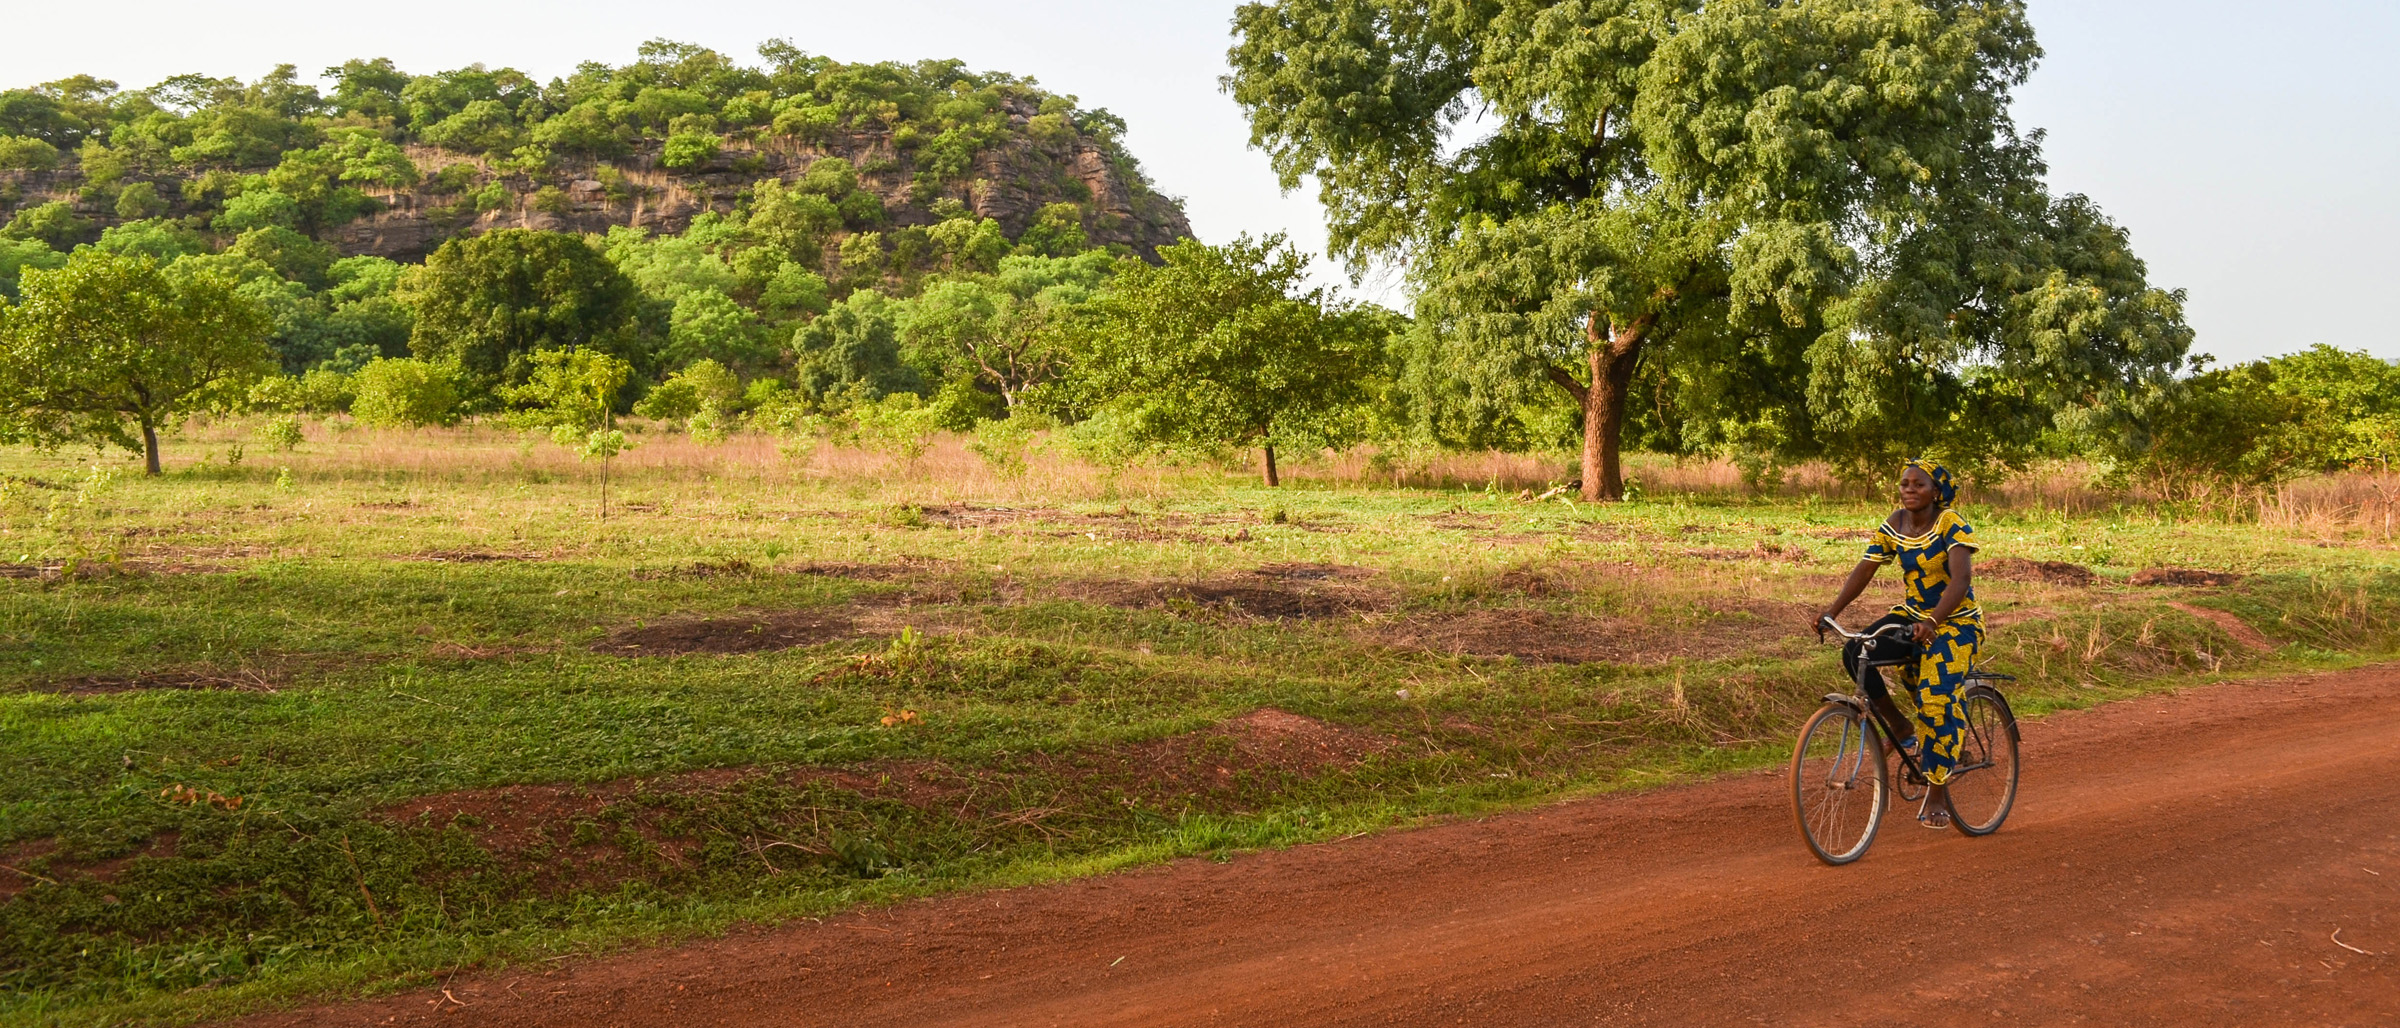 Road from Gabu to Koundara, Guinea - by jbdodane